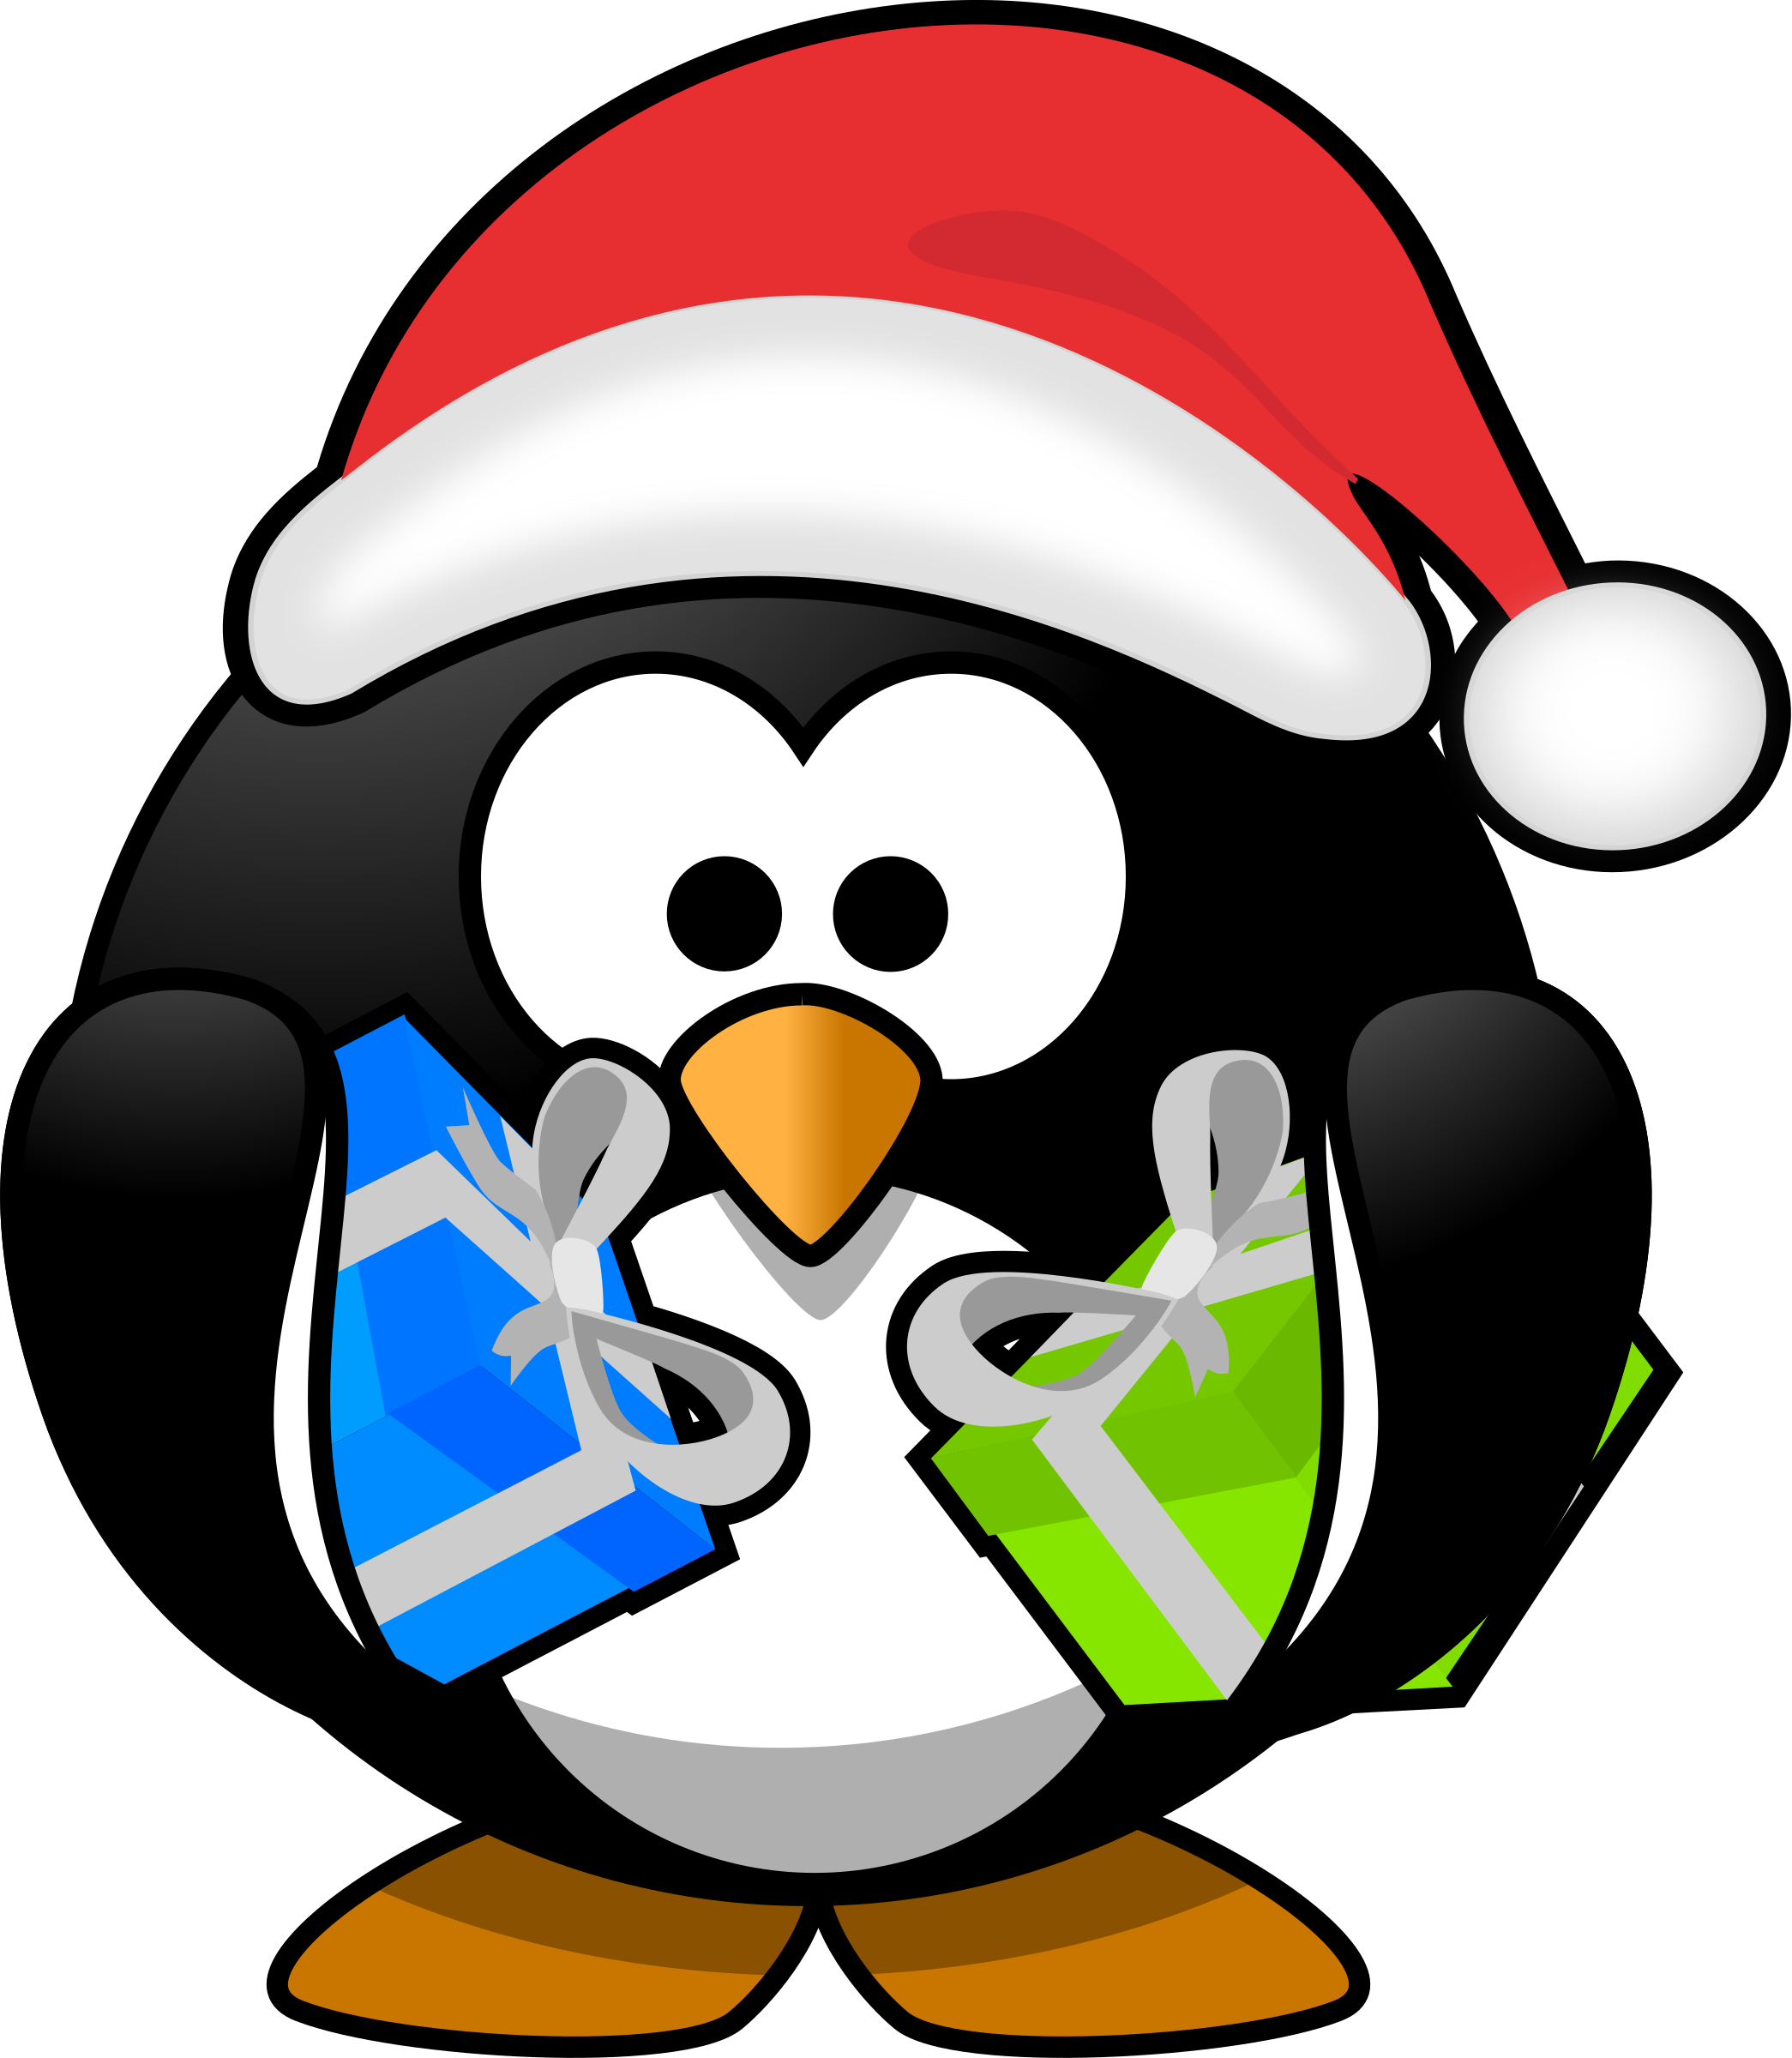 Santa penguin by Moini